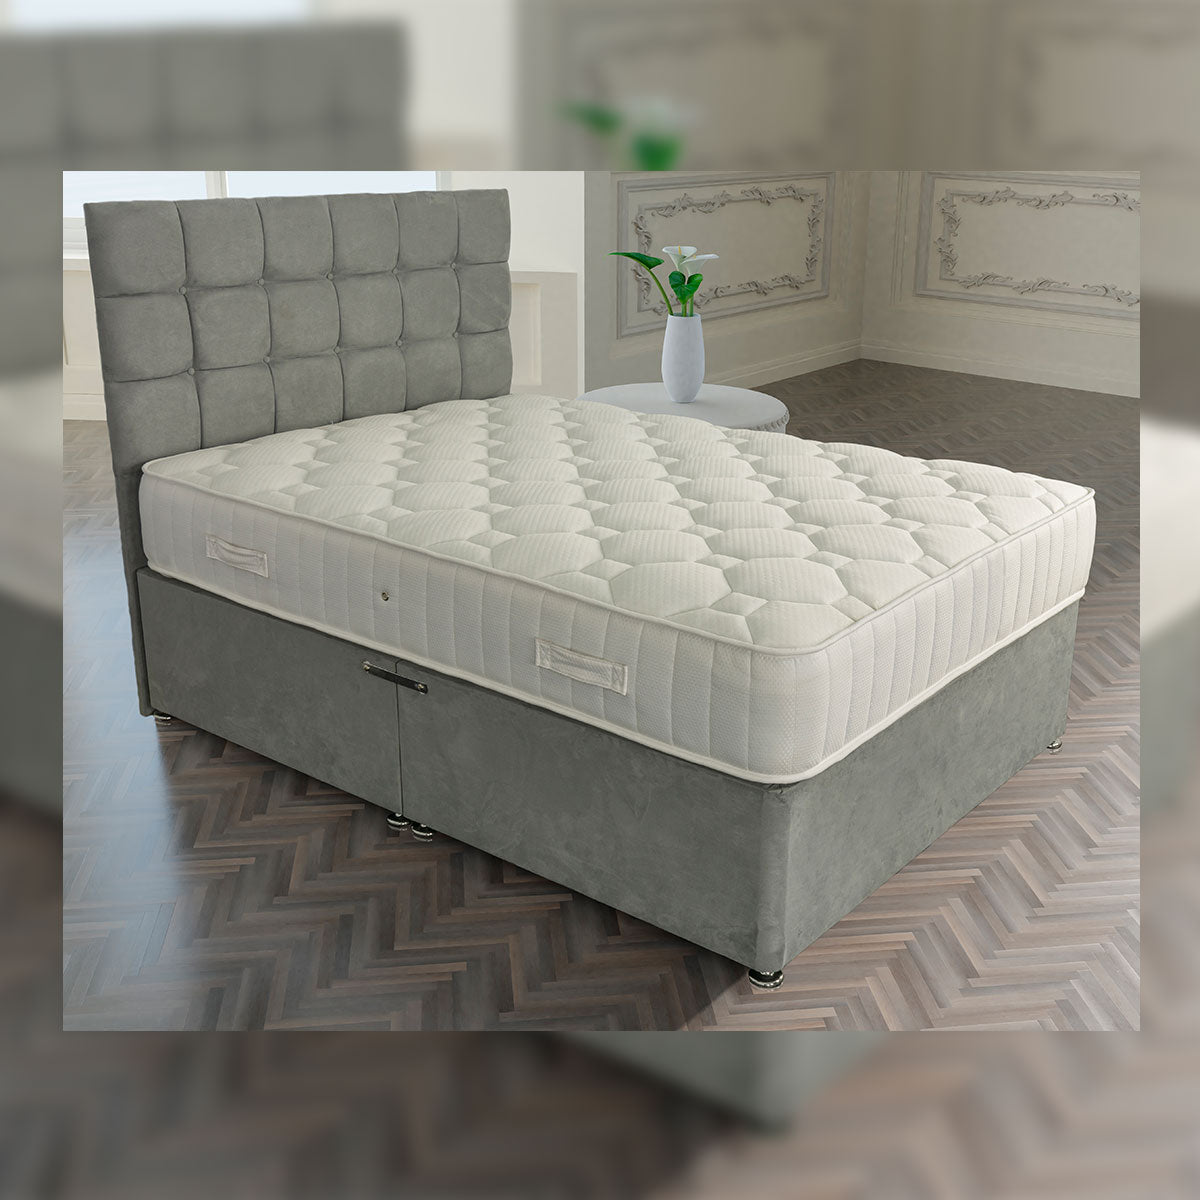 Memory Supreme Orthopaedic Mattress